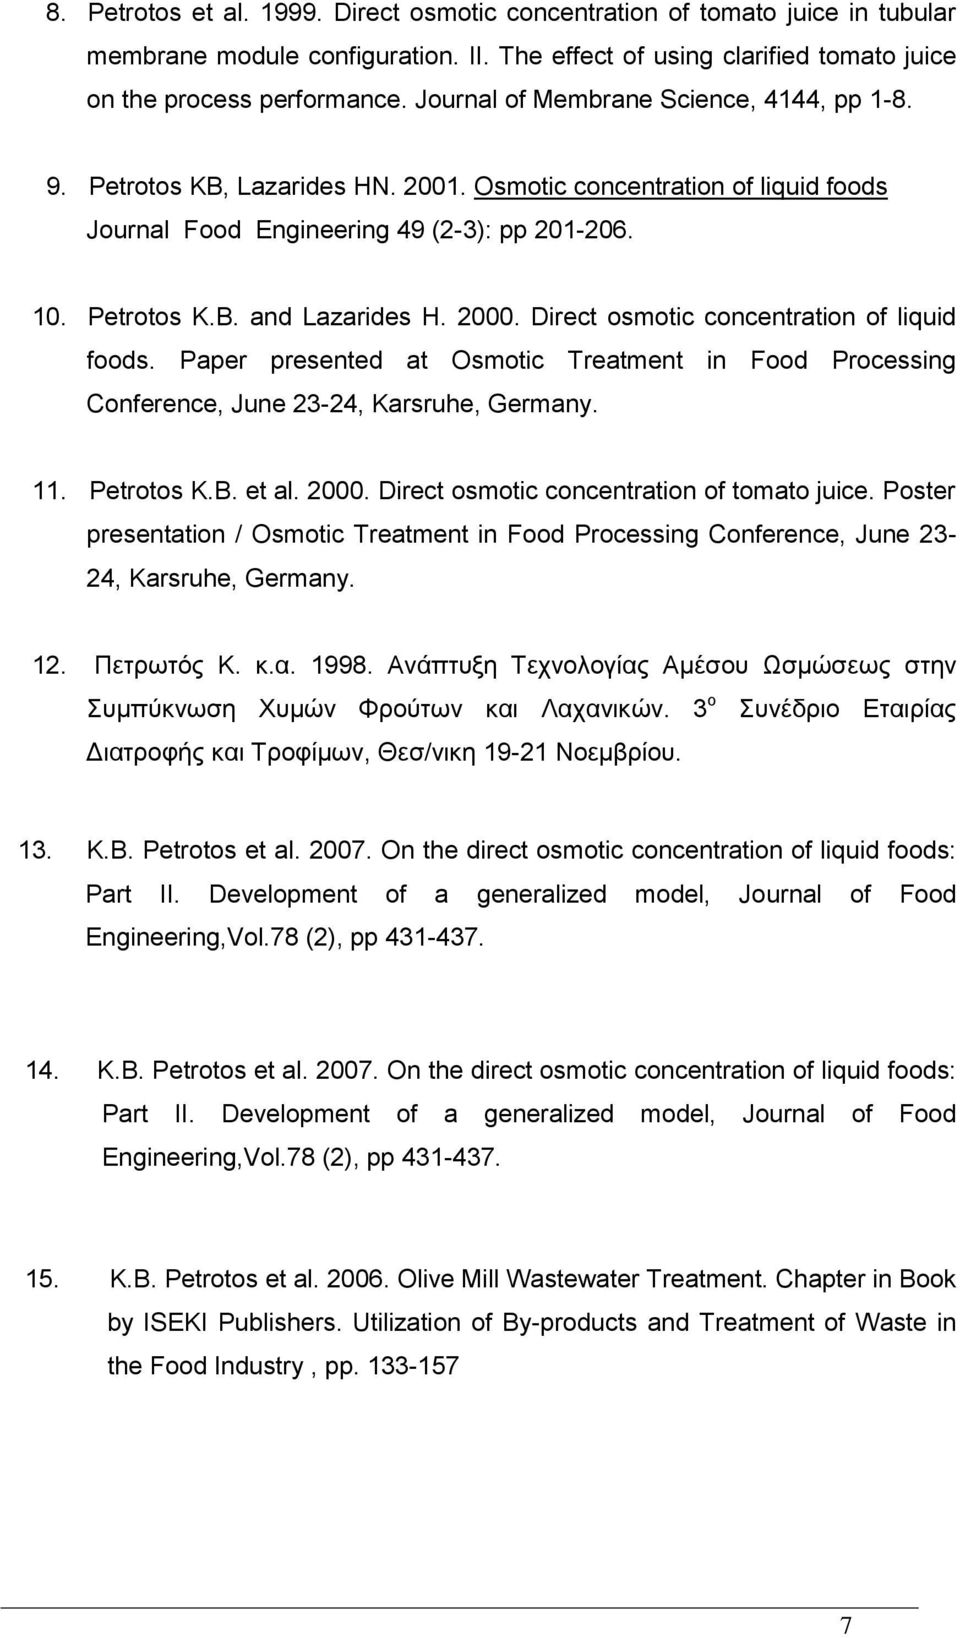 2000. Direct osmotic concentration of liquid foods. Paper presented at Osmotic Treatment in Food Processing Conference, June 23-24, Karsruhe, Germany. 11. Petrotos K.B. et al. 2000.